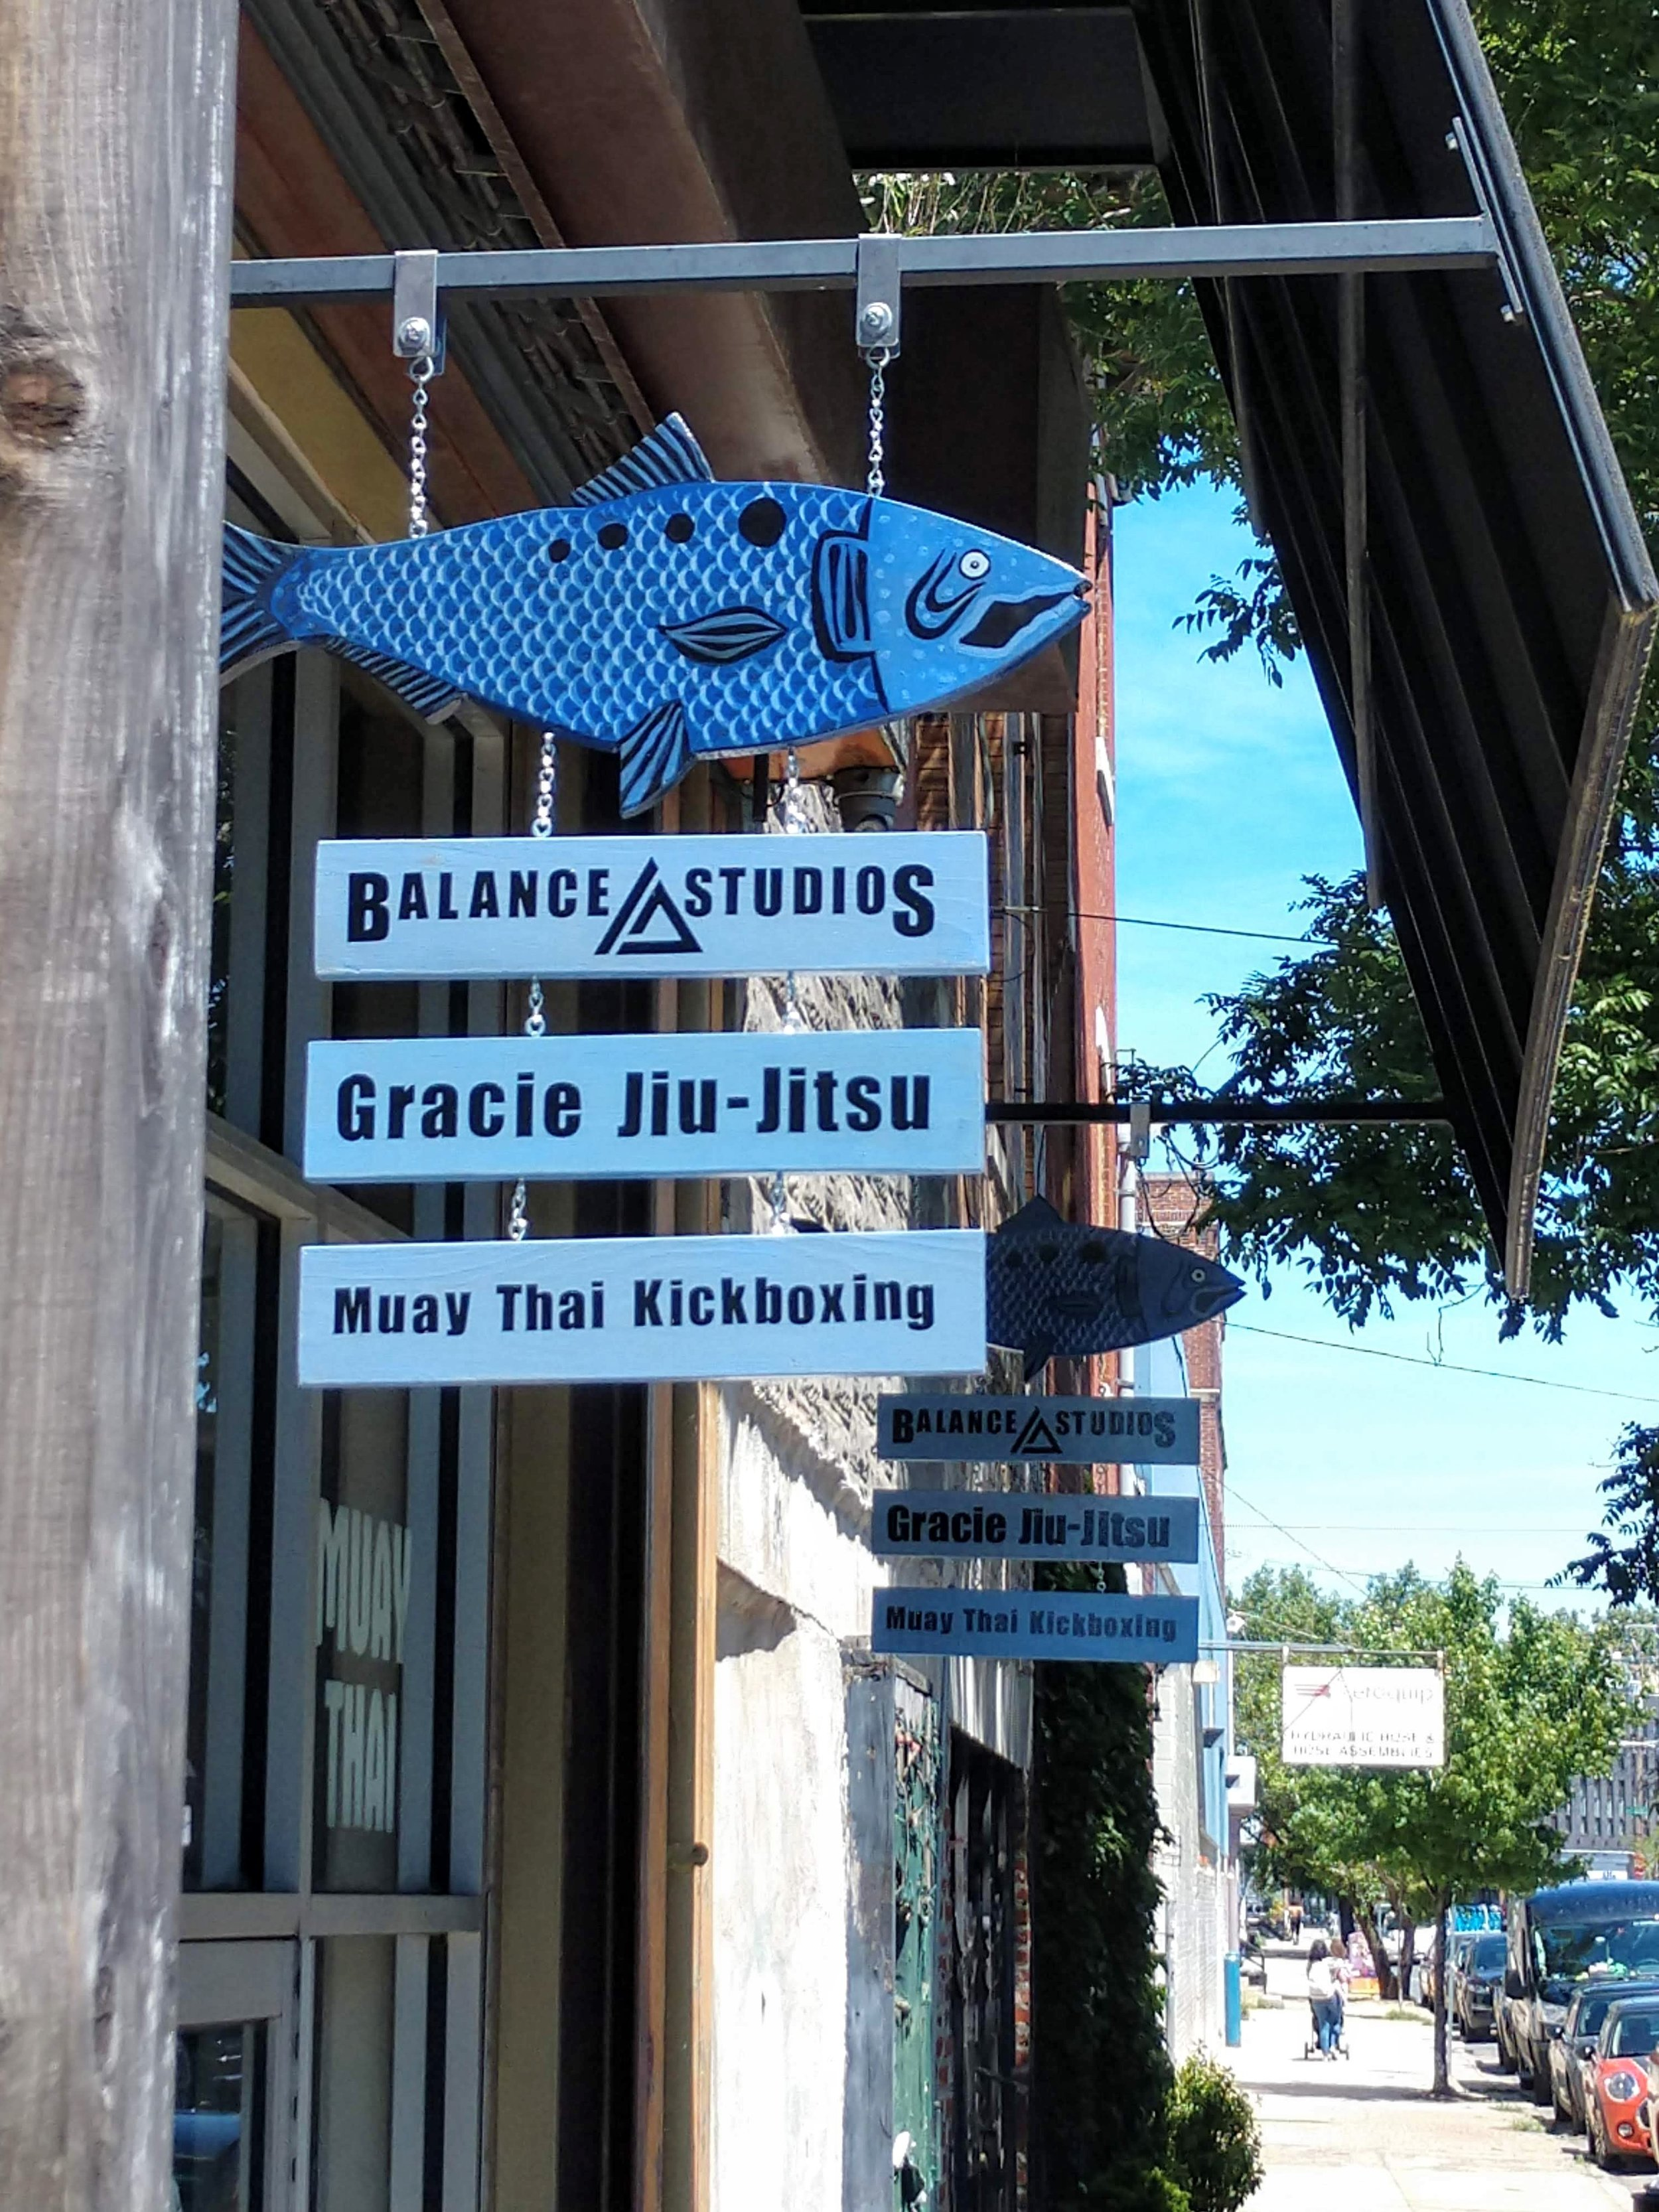 Fishtown Signs jiujitsu1.jpg